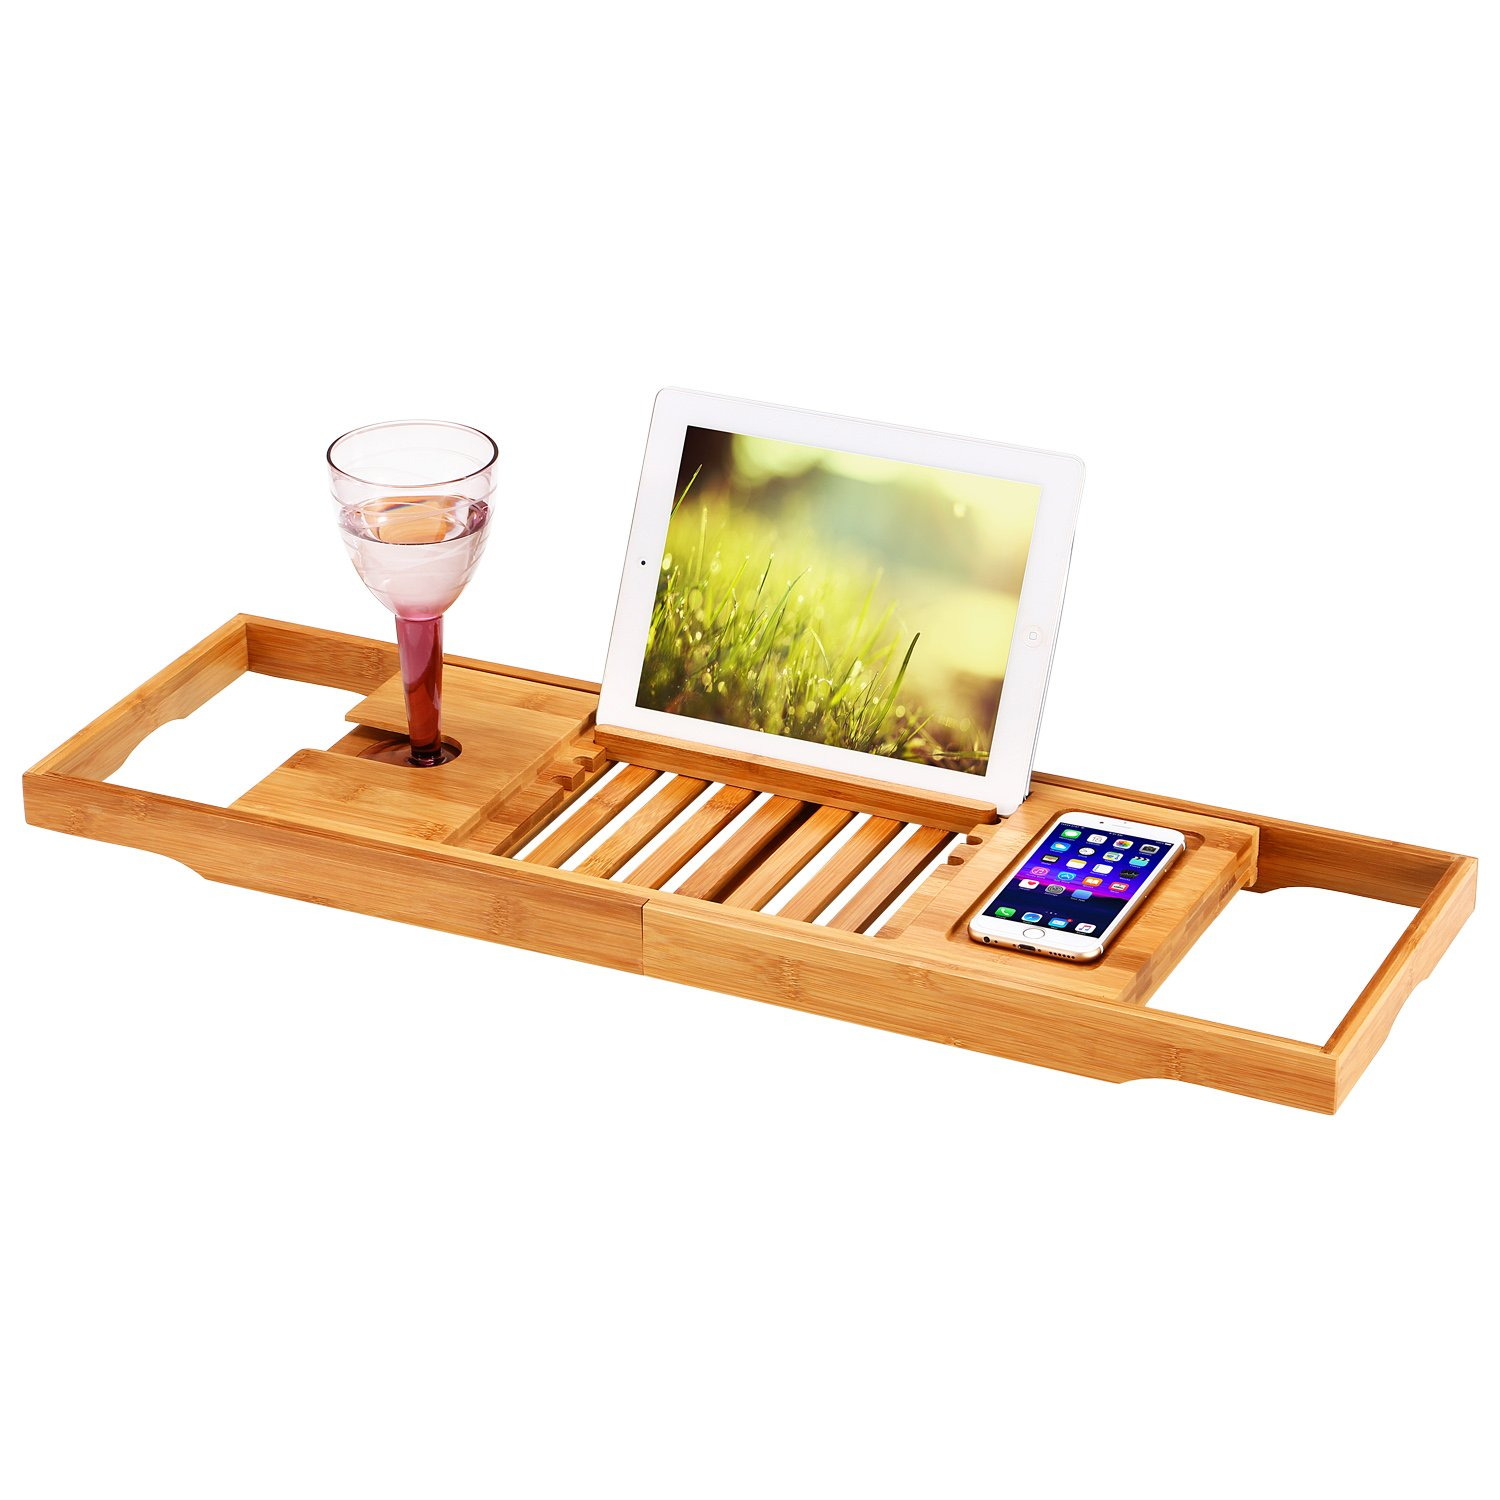 Amazon.com: Ollieroo Natural Bamboo Bathtub Caddy with Extending Sides  Adjustable Book Holder Tray Organizer for Phone and Wineglass: Home &  Kitchen